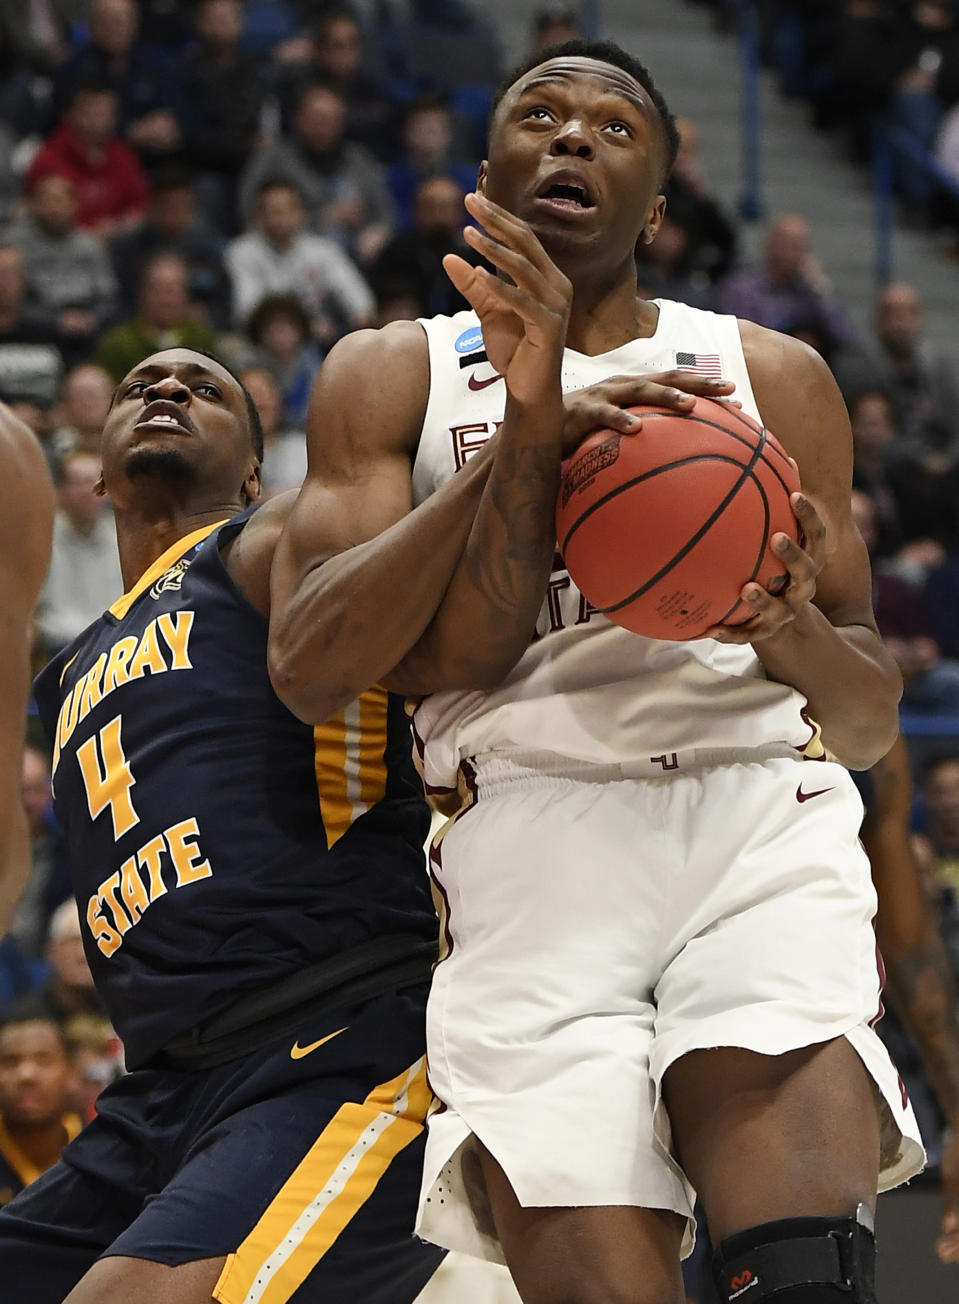 <p>Florida State's Mfiondu Kabengele (25) tangles with Murray State's Brion Sanchious (4) as he pulls down a rebound during the first half of a second round men's college basketball game in the NCAA tournament, Saturday, March 23, 2019, in Hartford, Conn. (AP Photo/Jessica Hill) </p>